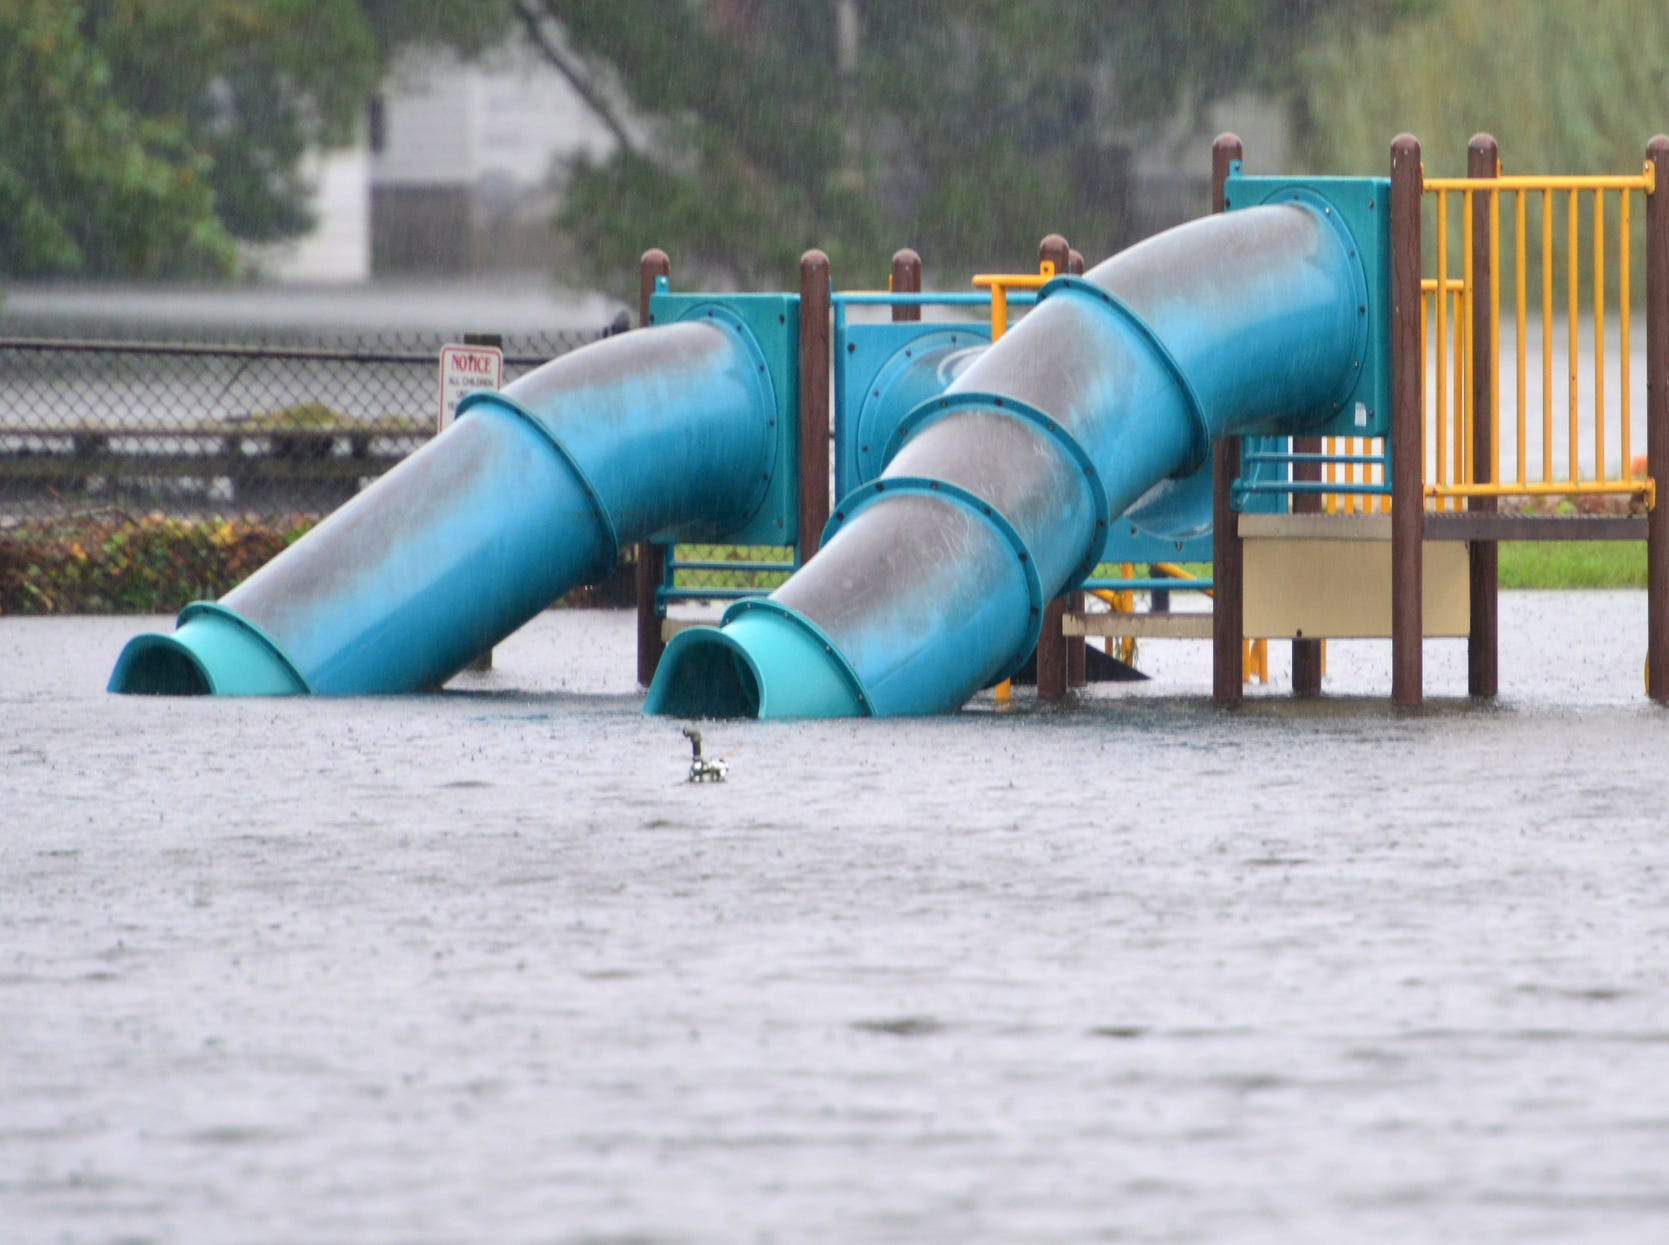 The rains from Hurricane Florence flooded playground on Willow St. in Washington, N.C. on Friday afternoon.